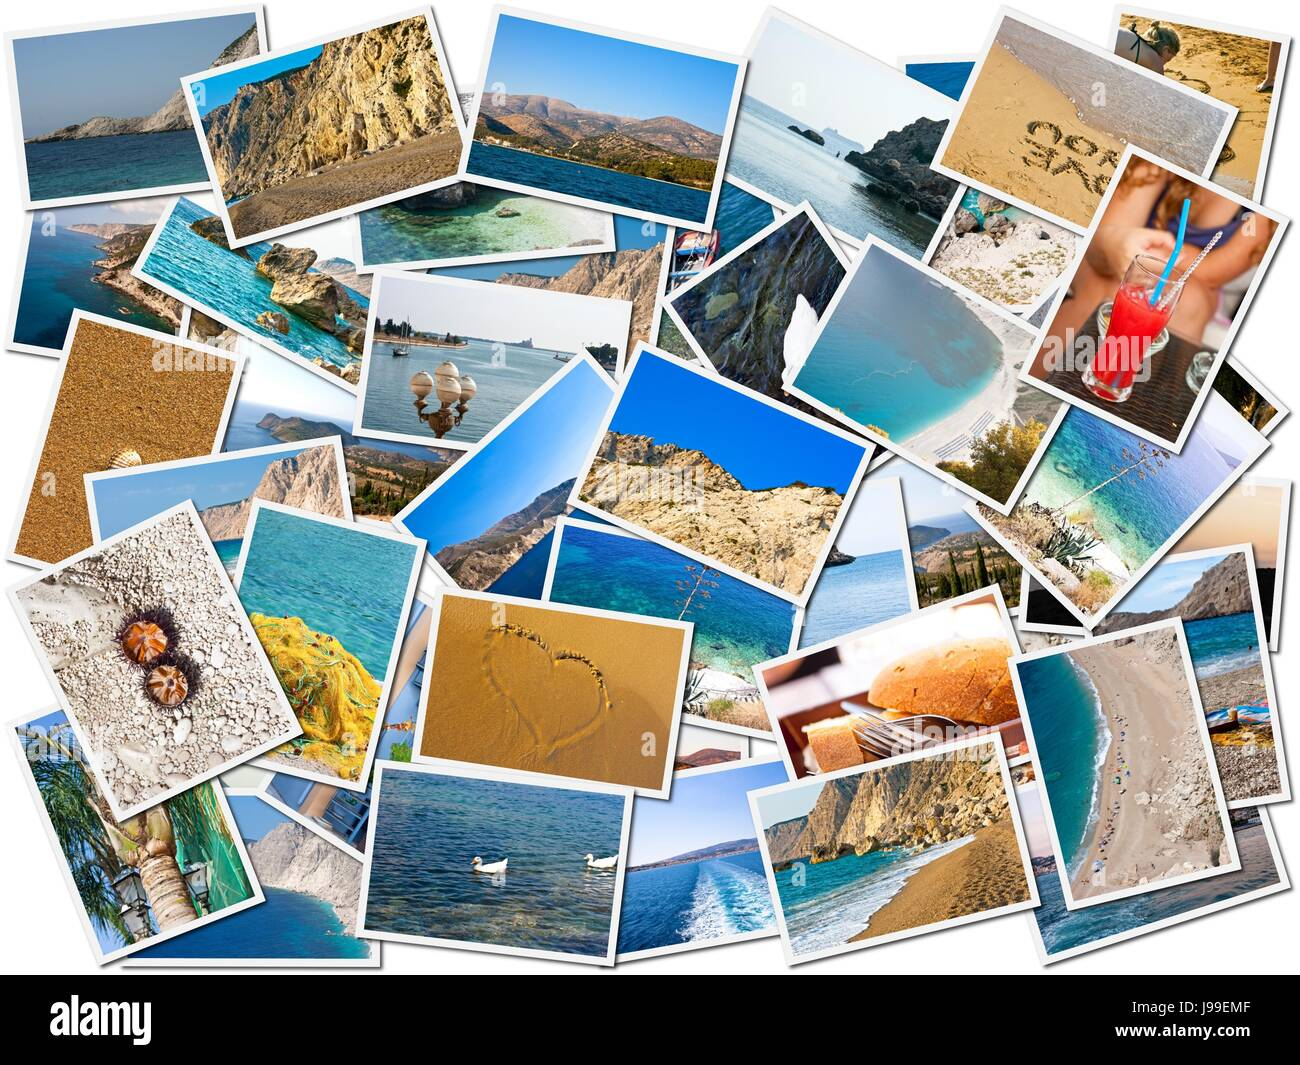 beach, seaside, the beach, seashore, photo, camera, collage, postcards, - Stock Image